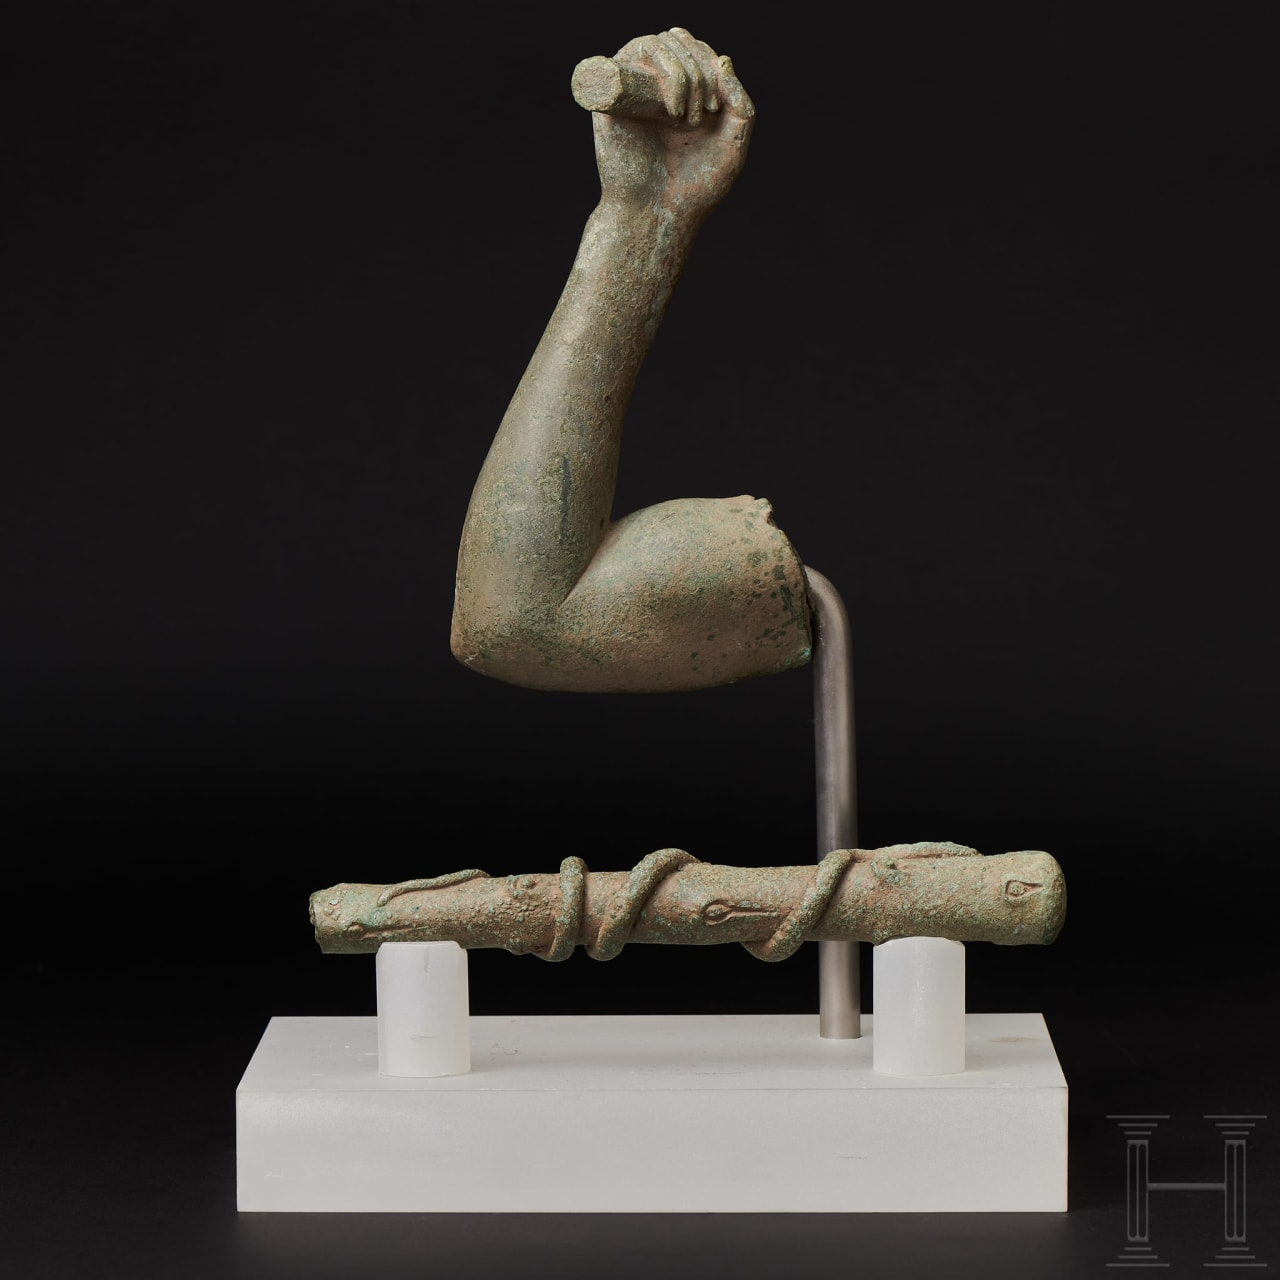 A Roman bronze fragment of an arm and a club on a pedestal, 1st - 2nd century